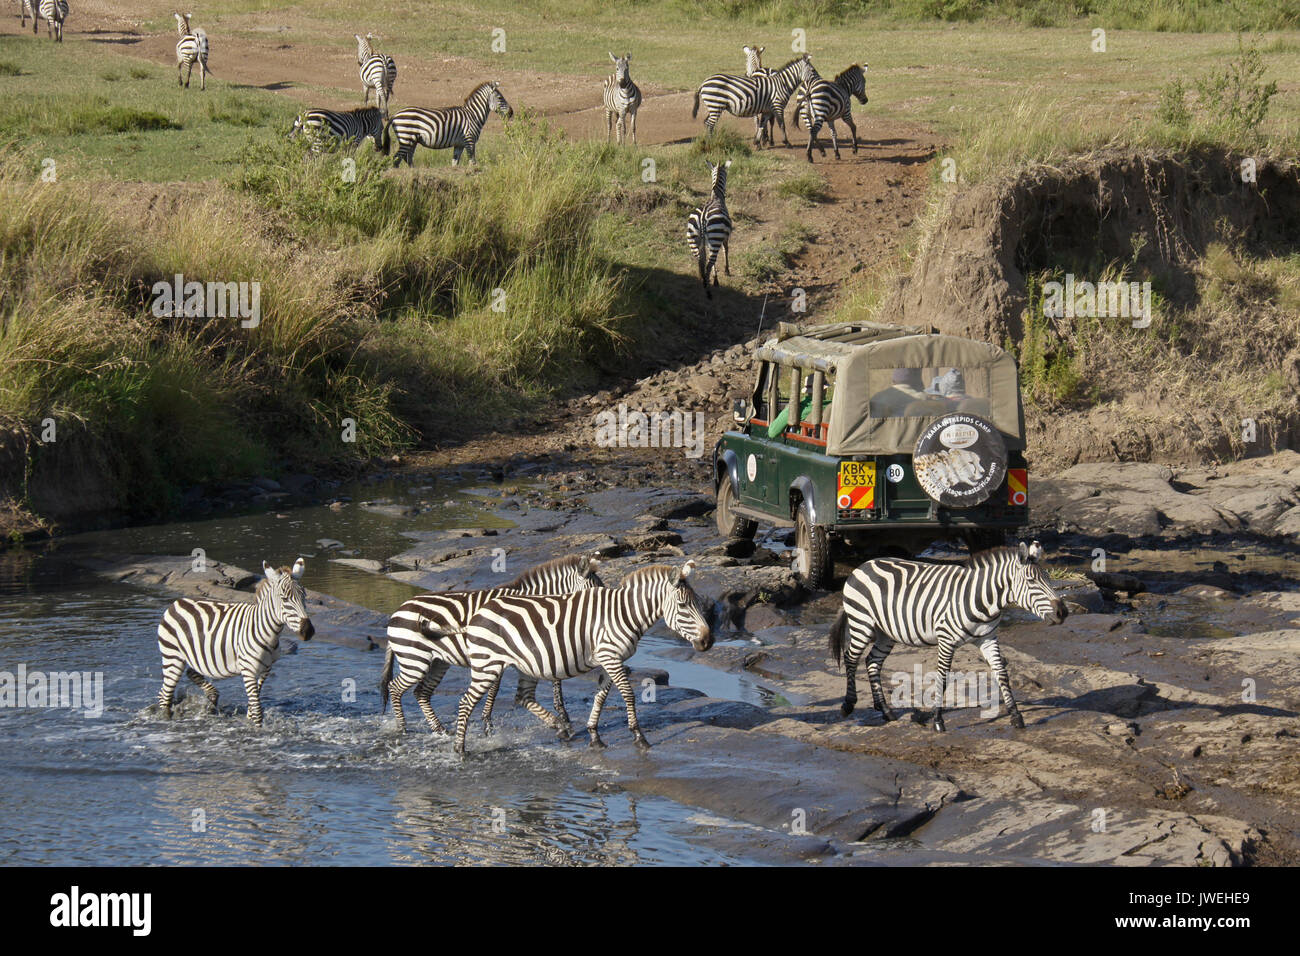 Safari vehicle crossing river where Burchell's (common or plains) zebras were drinking, Masai Mara Game Reserve, Stock Photo